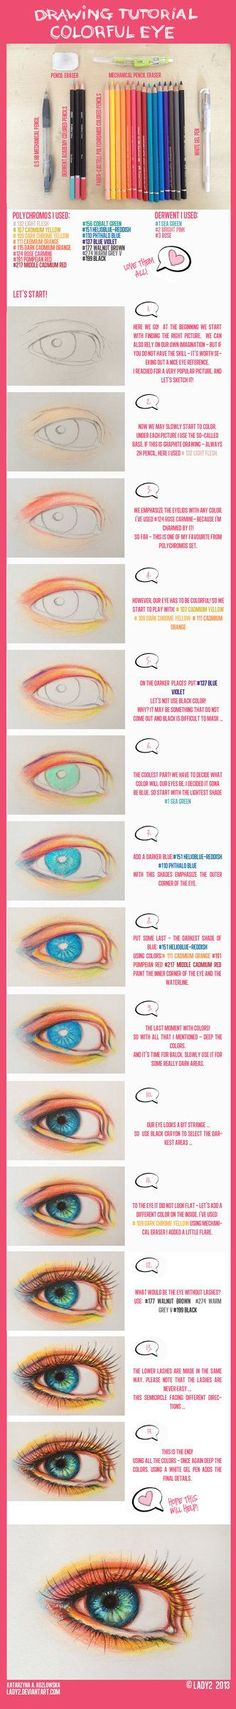 And here it is! You asked me for a tutorial how to draw an eye using colored pencils. This time colorful I hope it will help you a little bit ... If you have any questions please write in the comme...